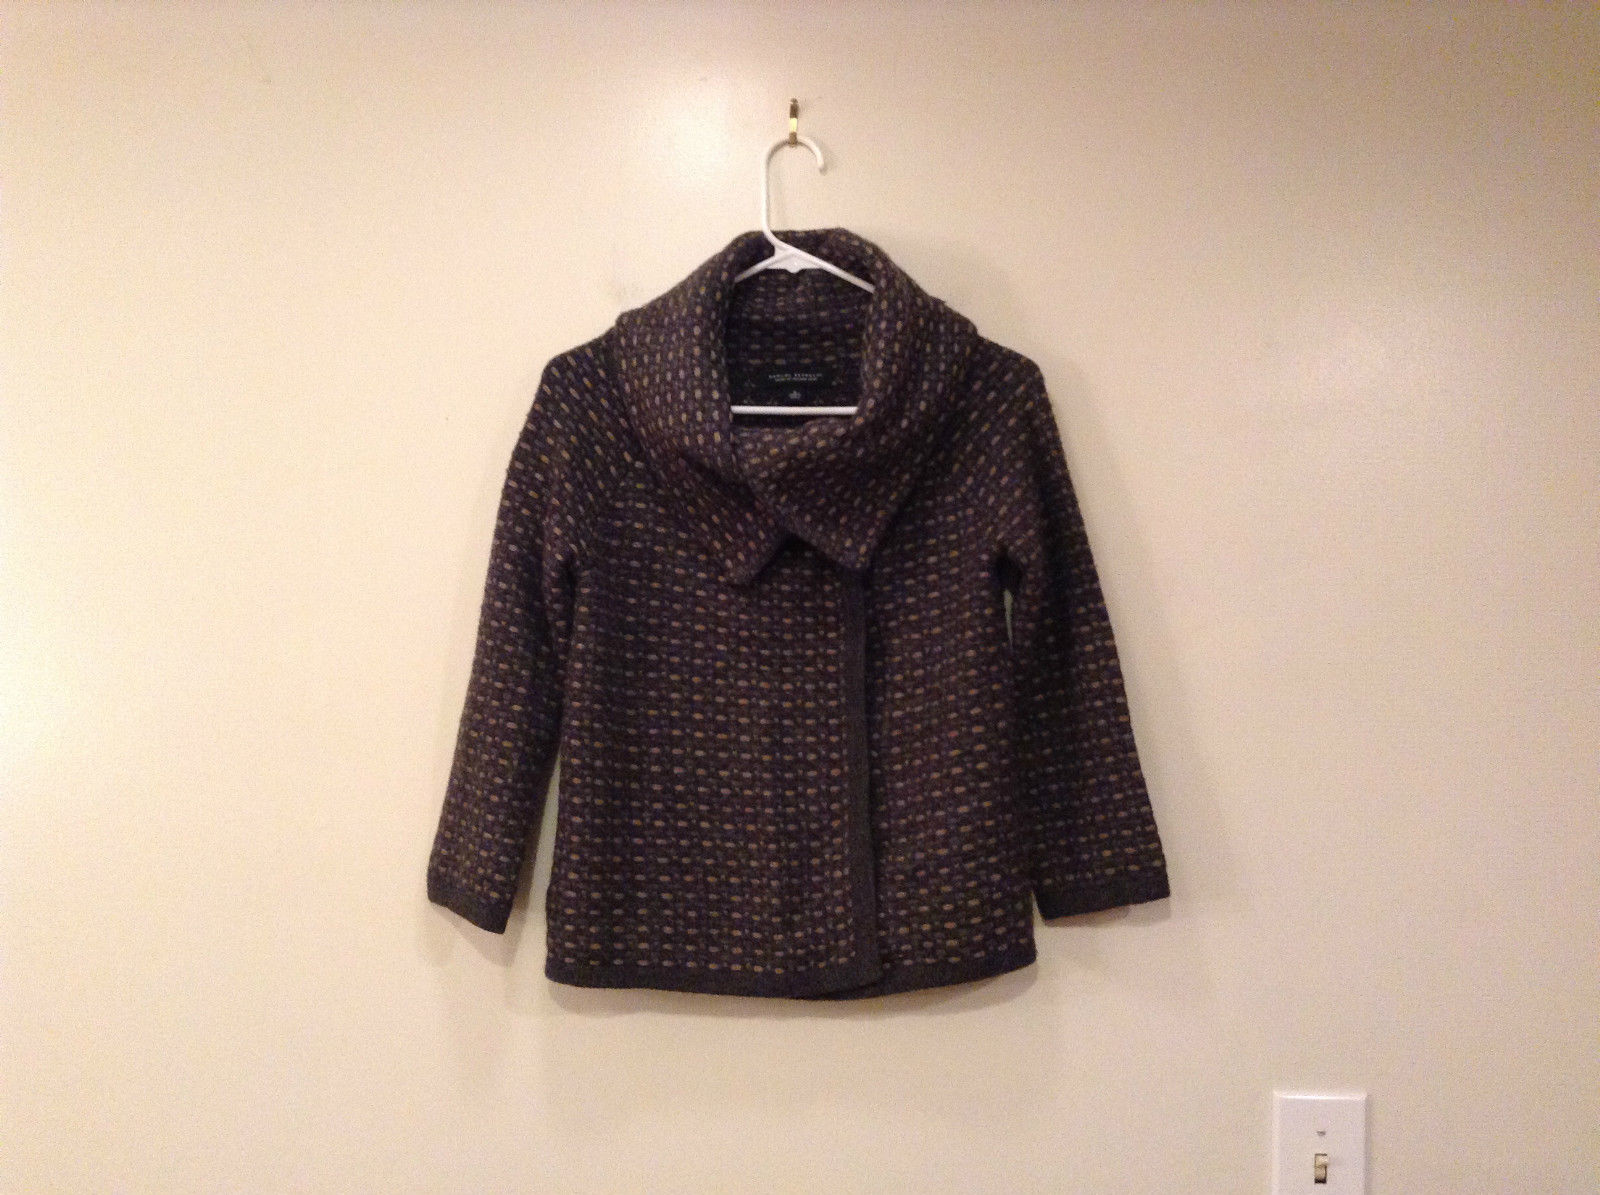 Banana Republic Gray Light Brown Stripes Dots Sweater Jacket Size Small